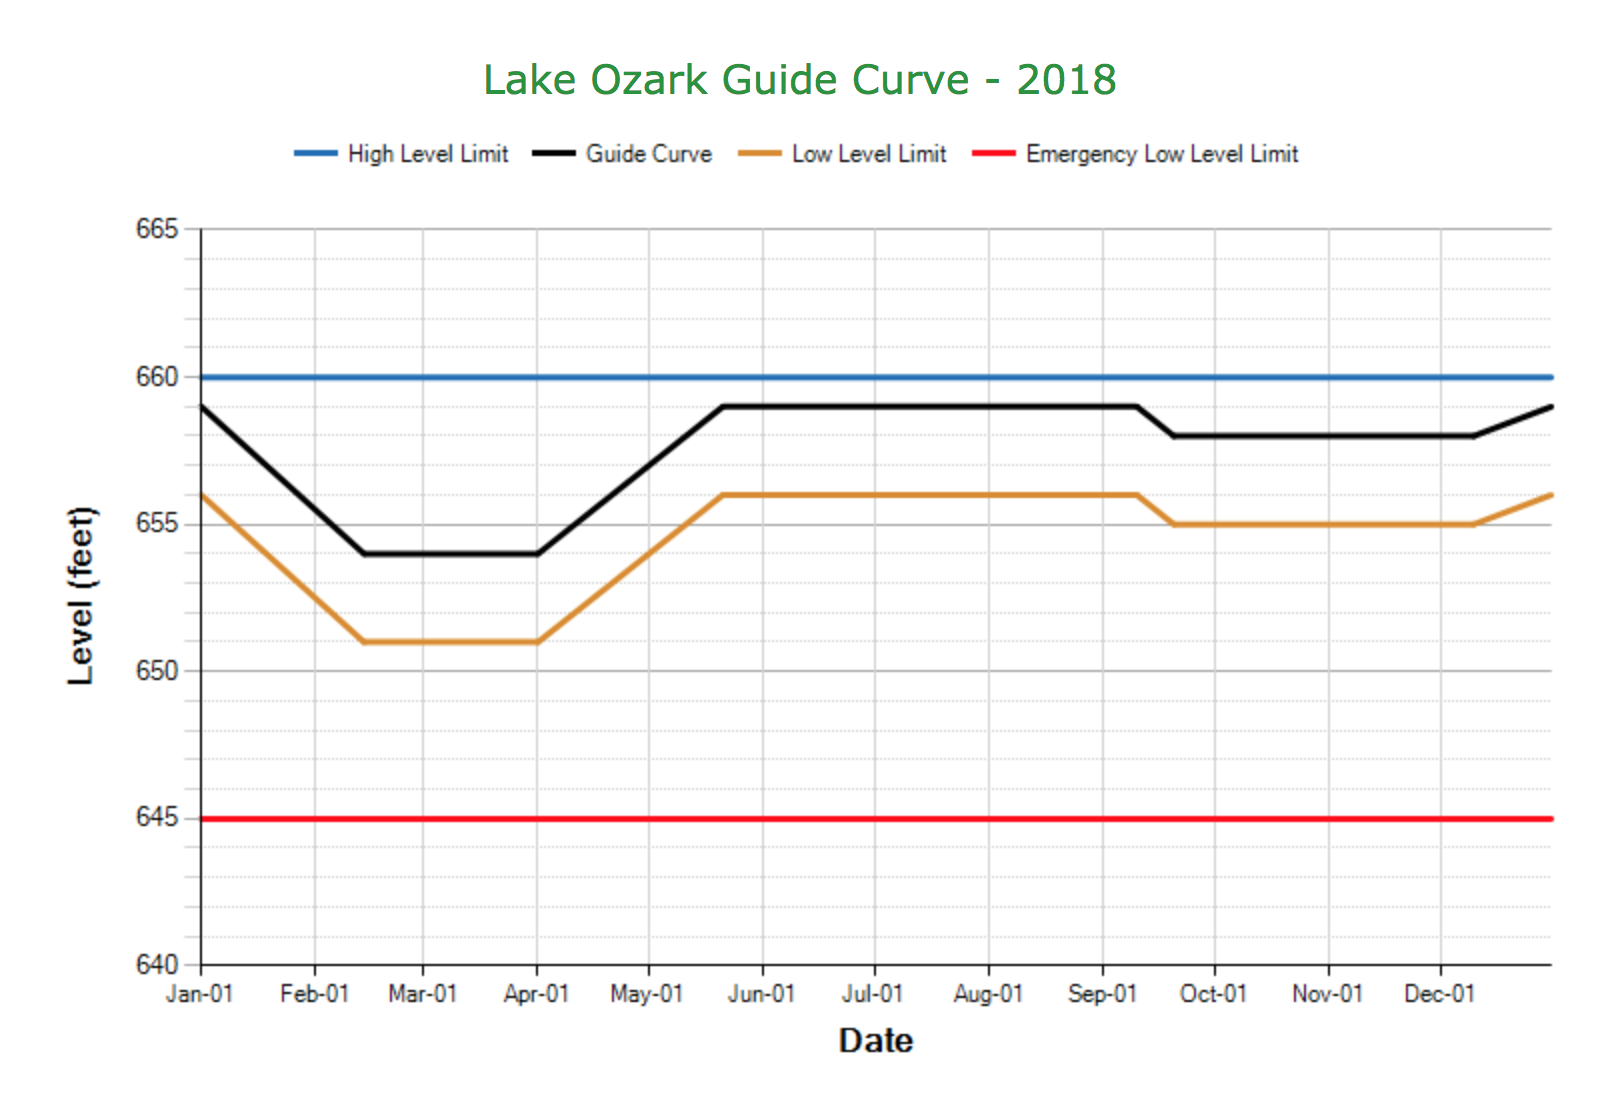 lake ozark guide curve 2018